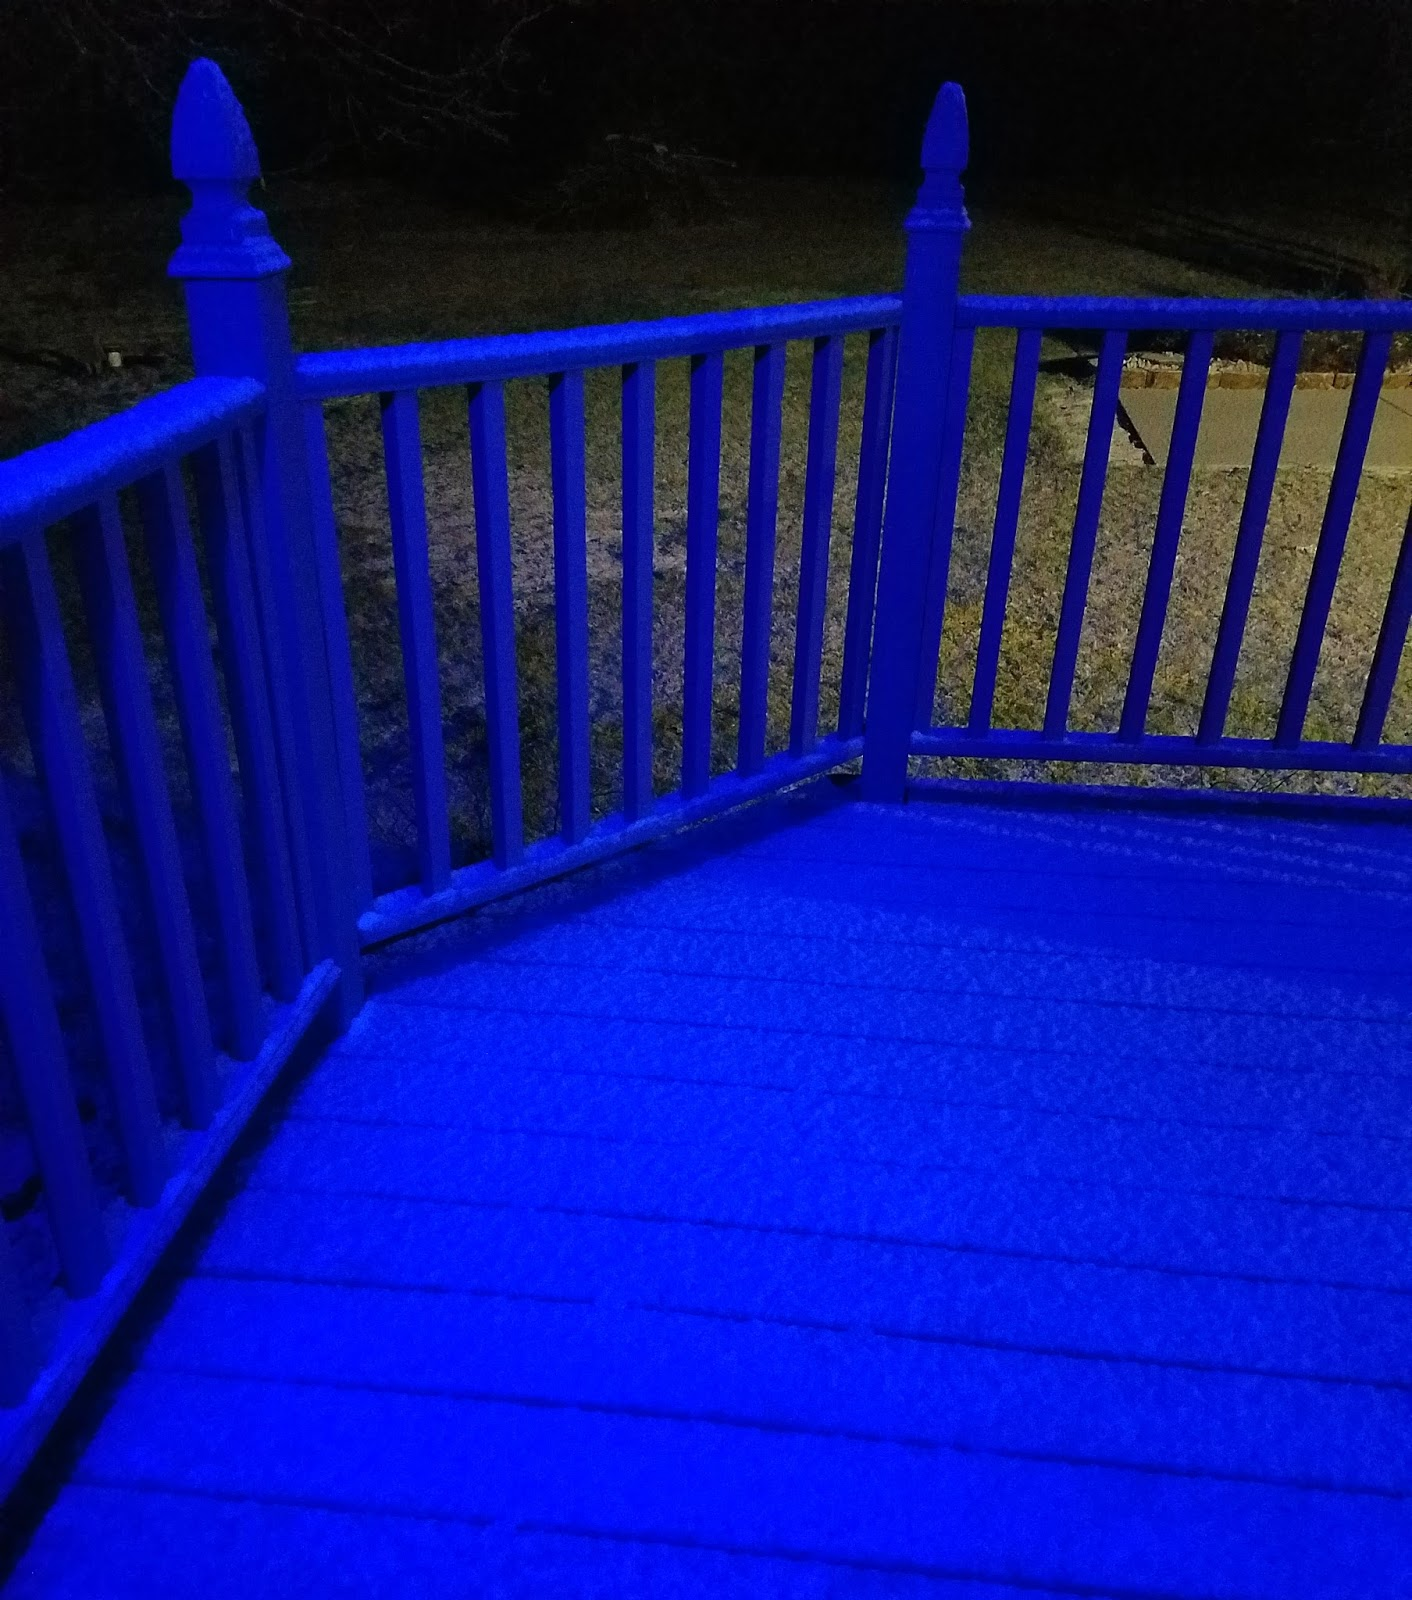 Although I Am Not A Fan Of The Snow, It Does Look Pretty When It Reflects  Our Blue Porch Lights We Have Lit To Honor Law Enforcement.